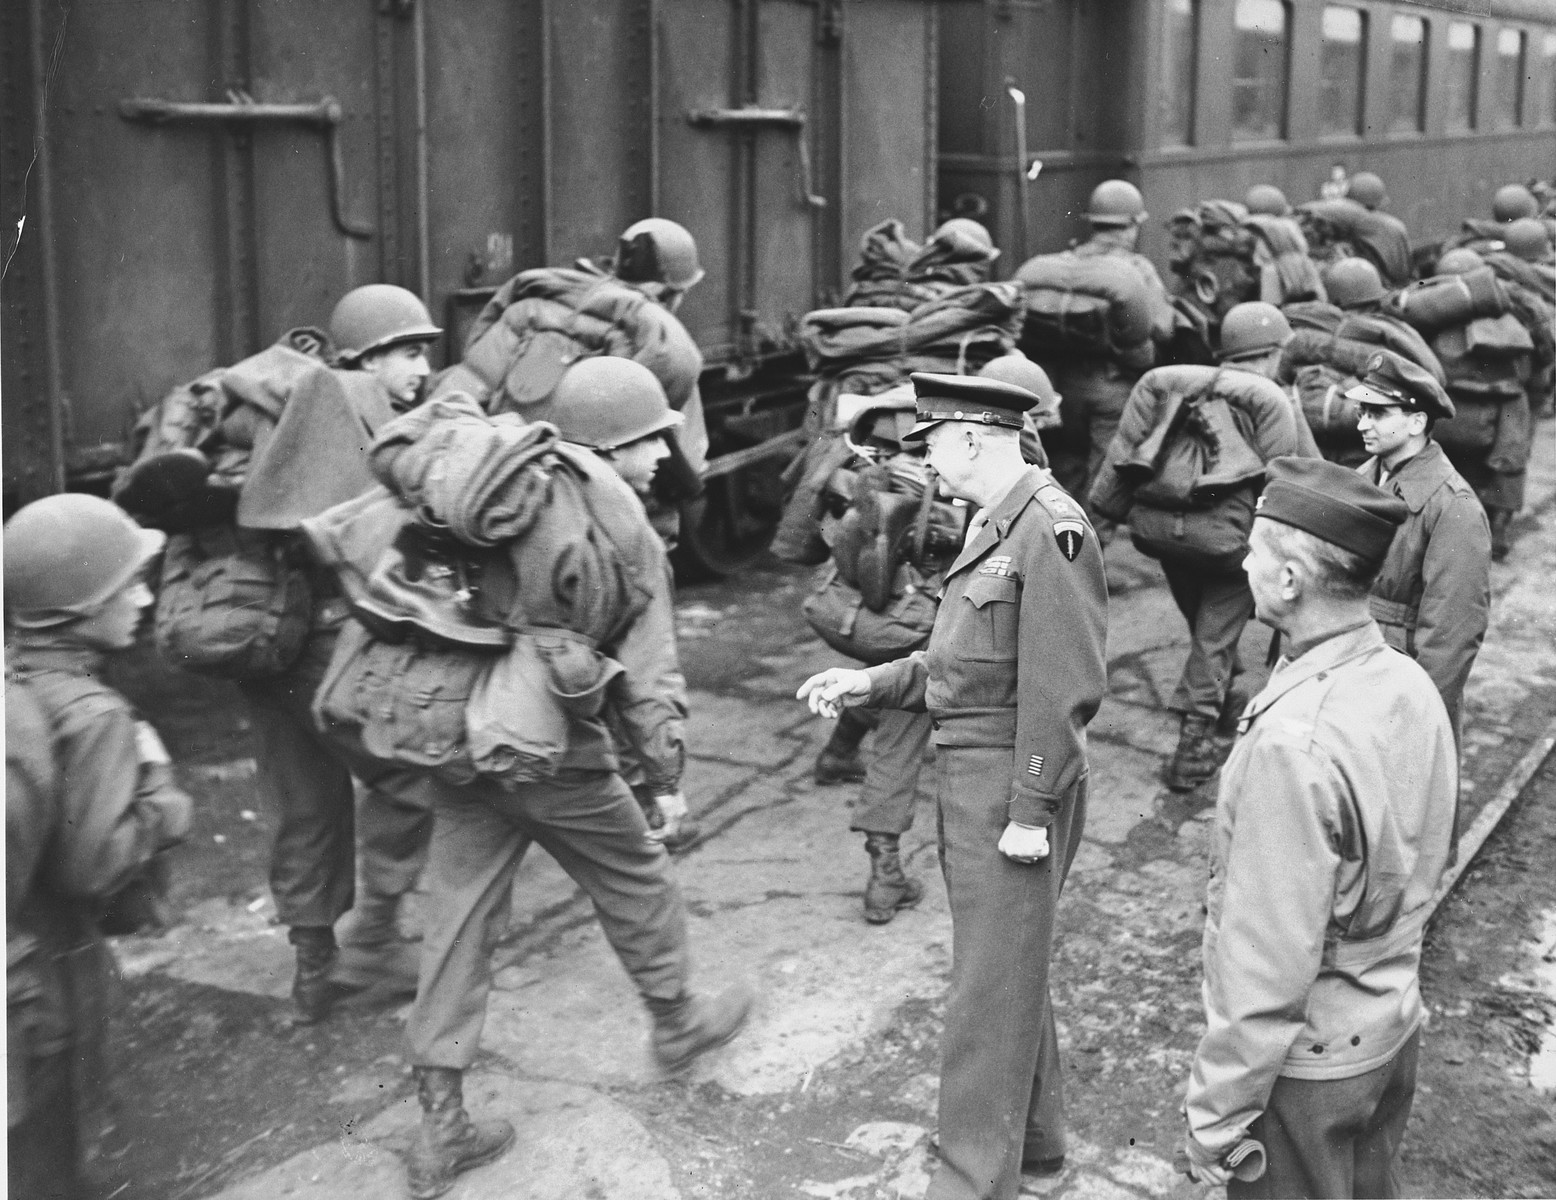 General Dwight D. Eisenhower talks to US troops who are marching with their gear alongside a train.